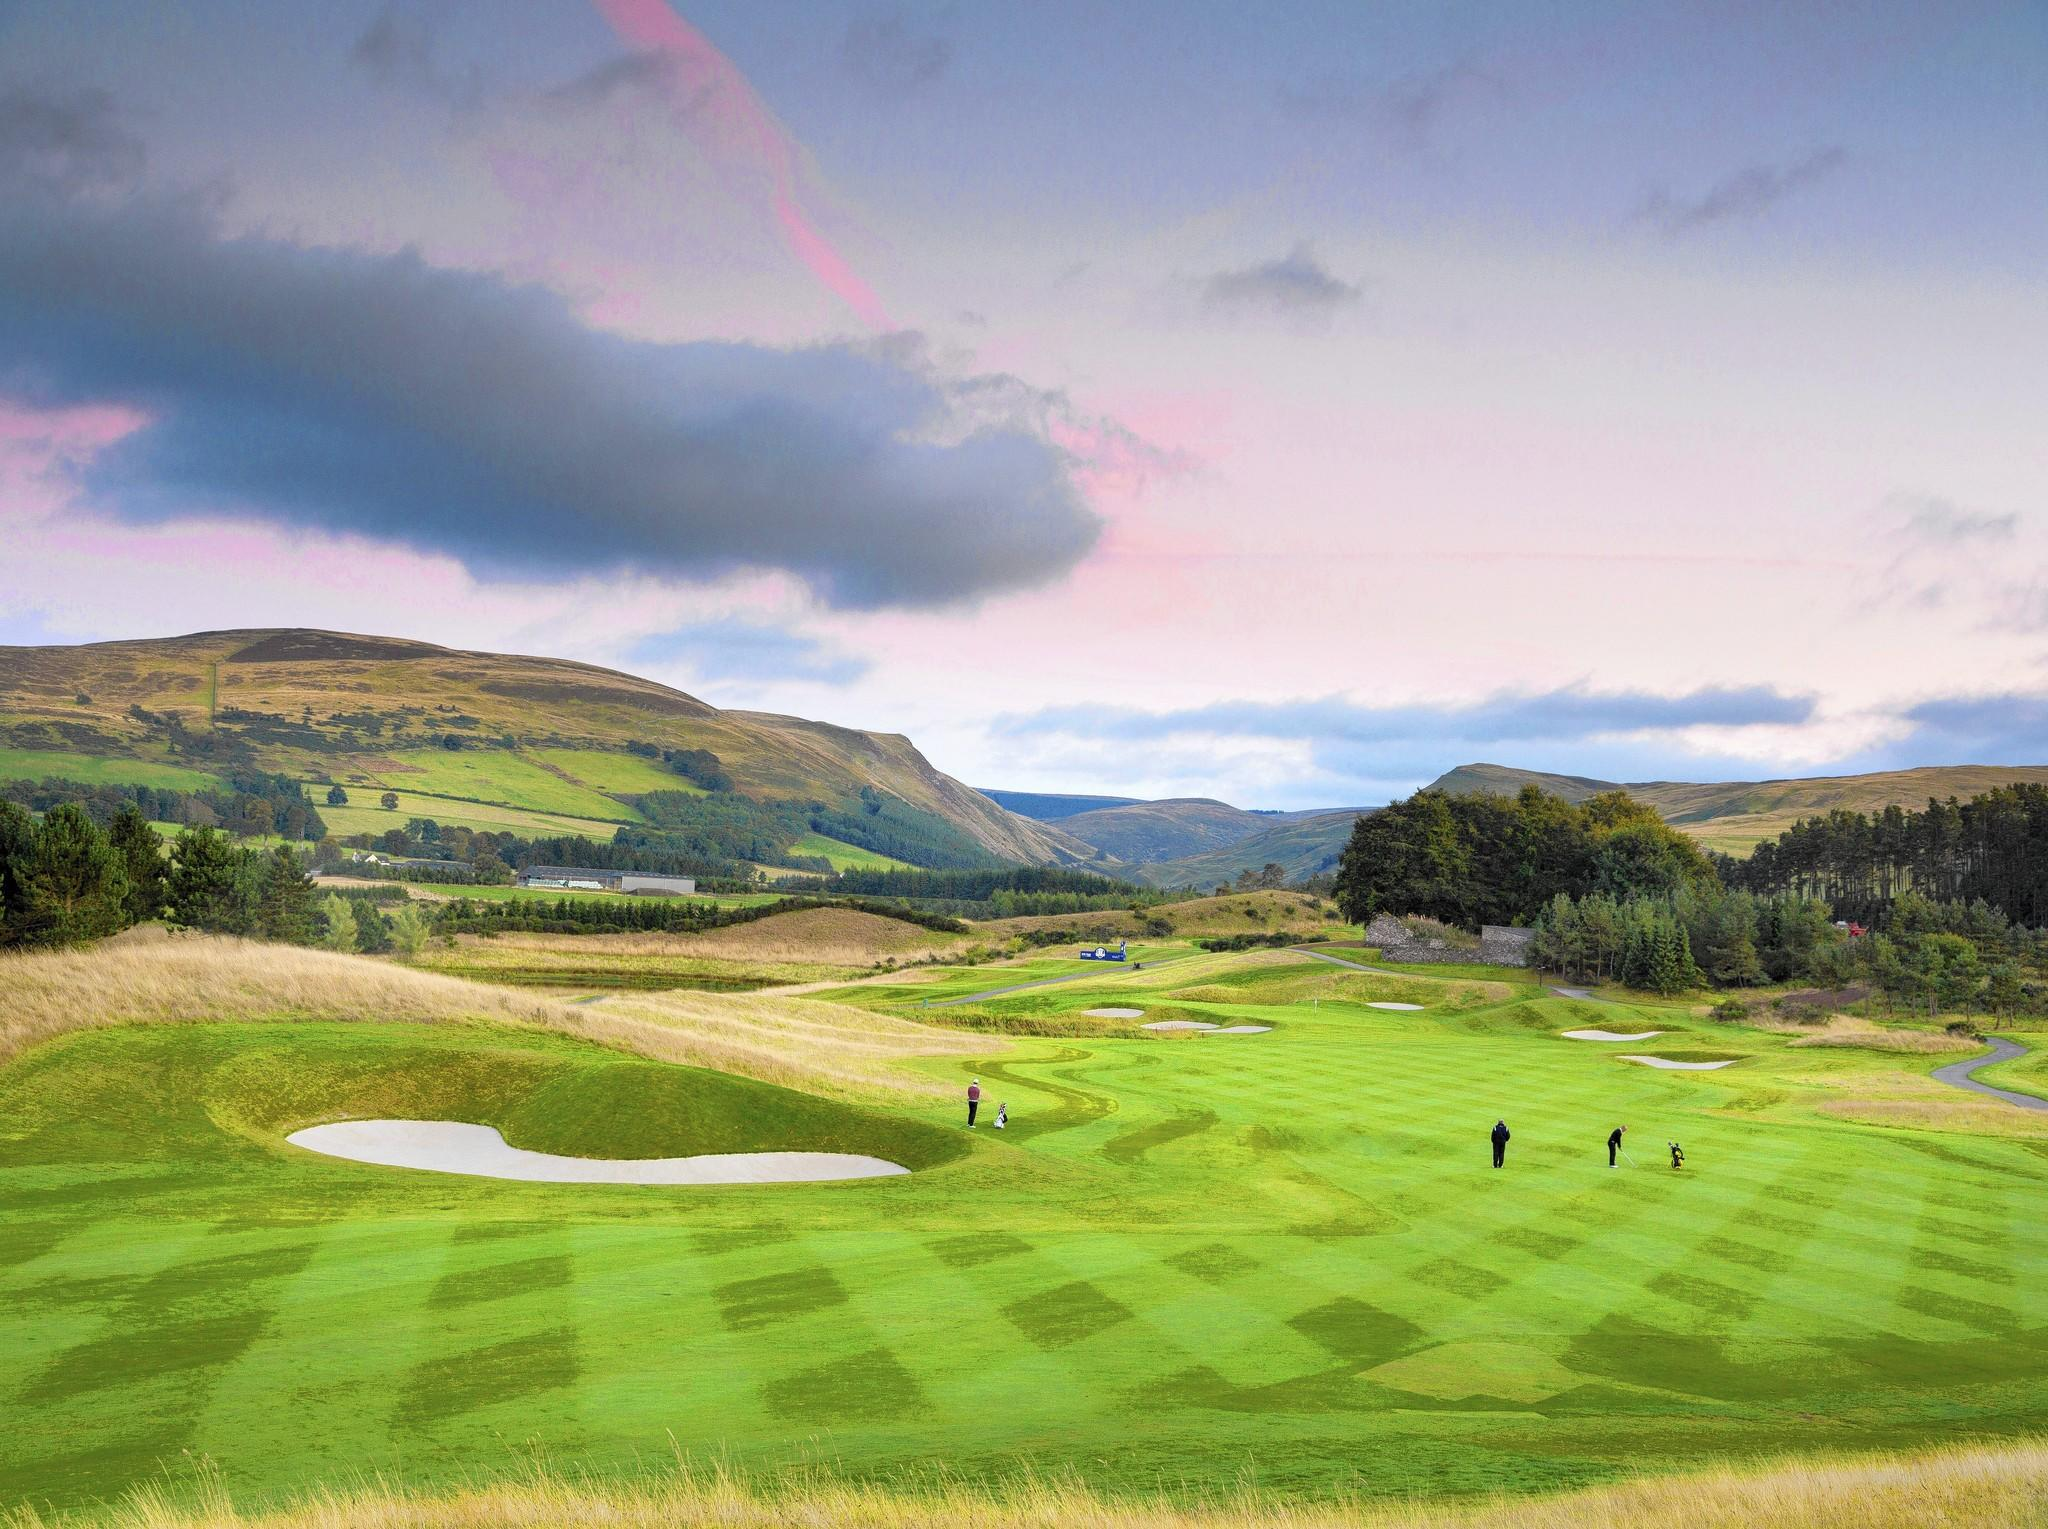 The PGA Centenary Course at Gleneagles, Perthshire.